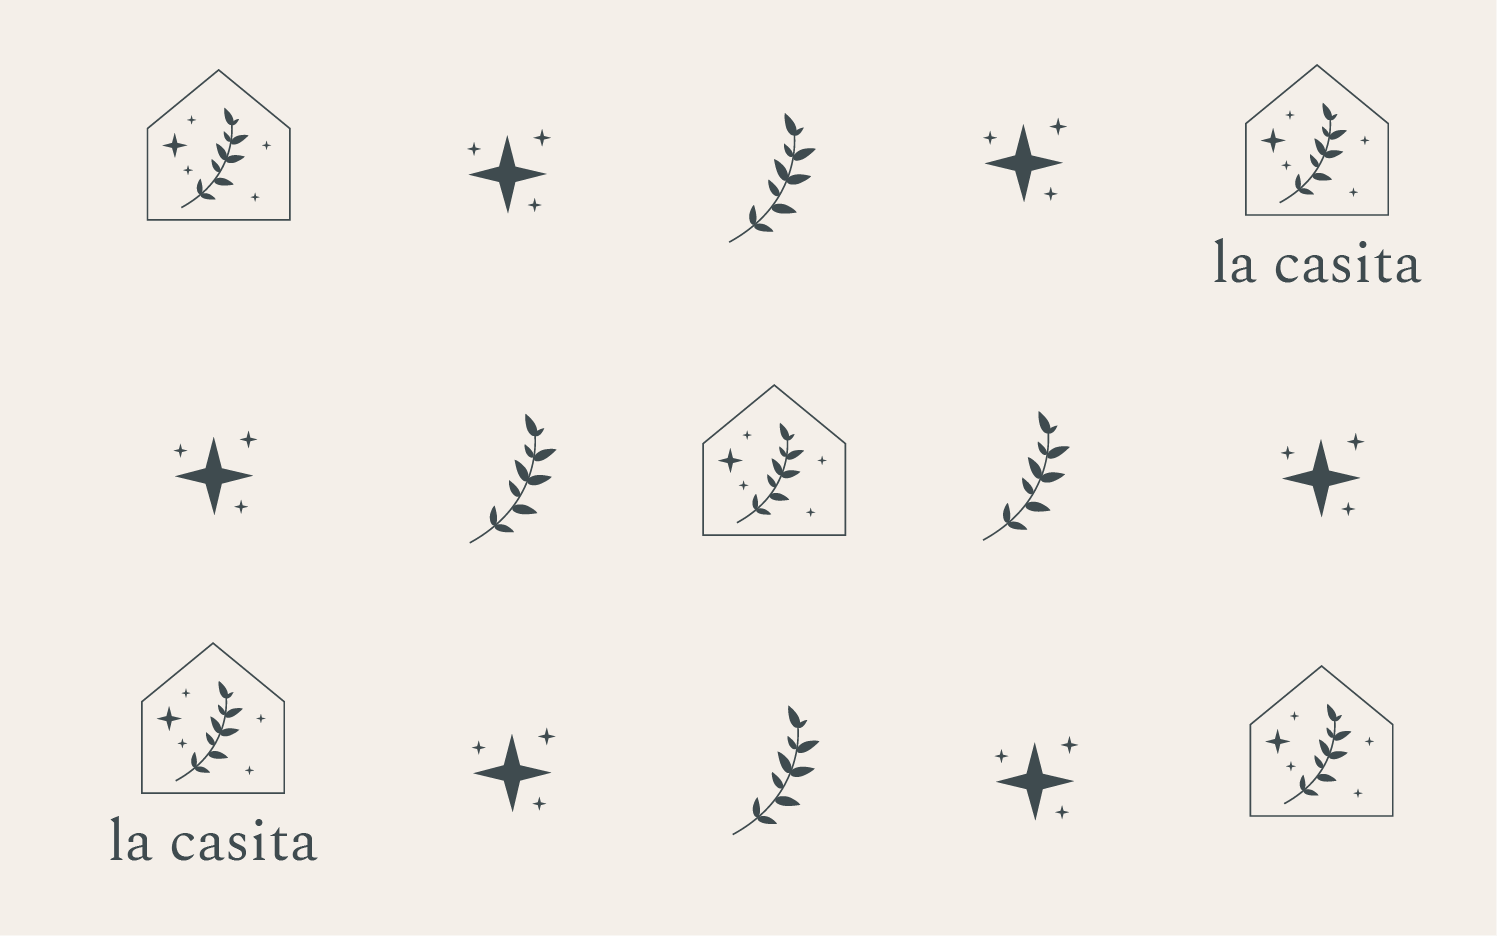 La Casita logos, branch elements and star elements in a pattern